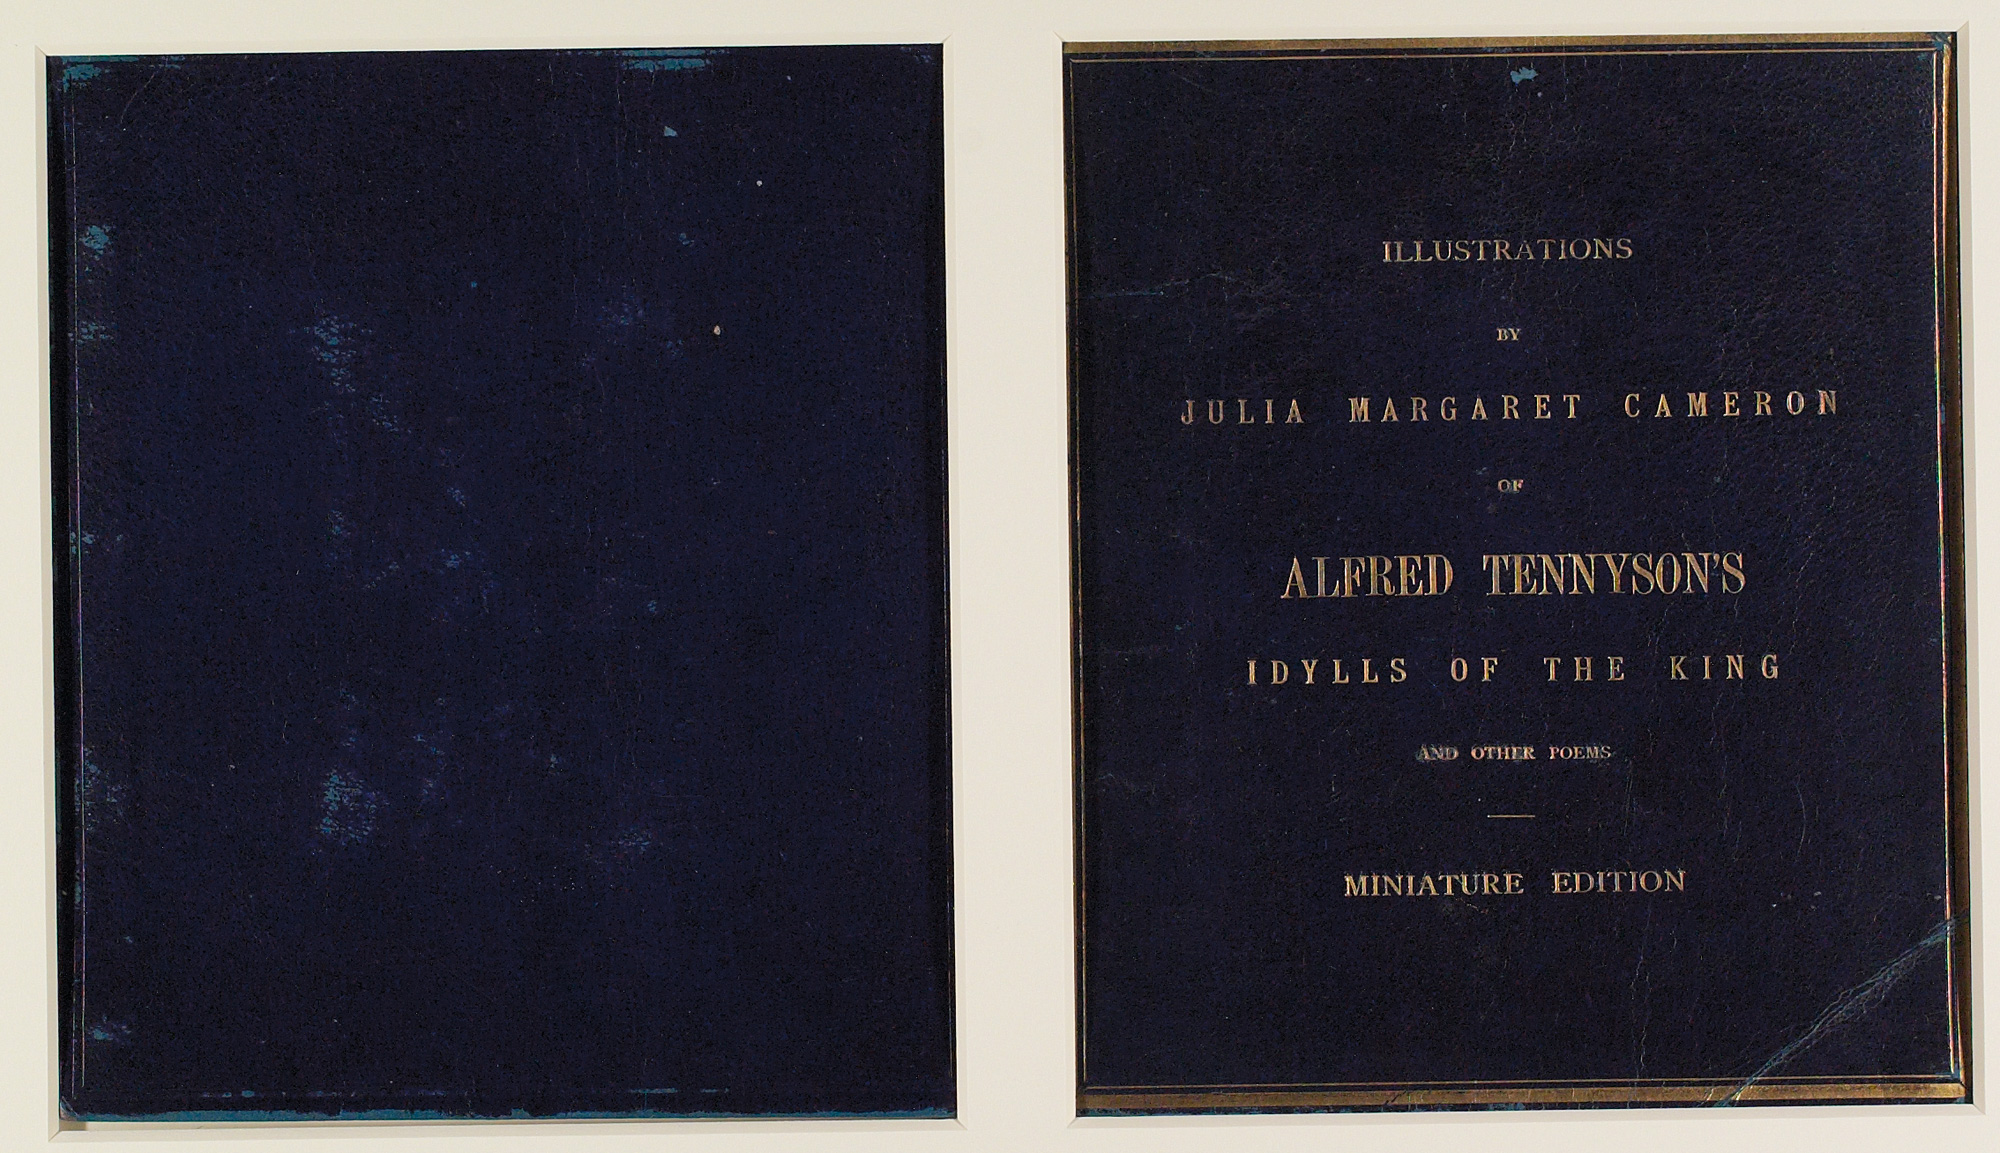 Alfred Tennyson's Idylls of the King, photographically illustrated by Julia Margaret